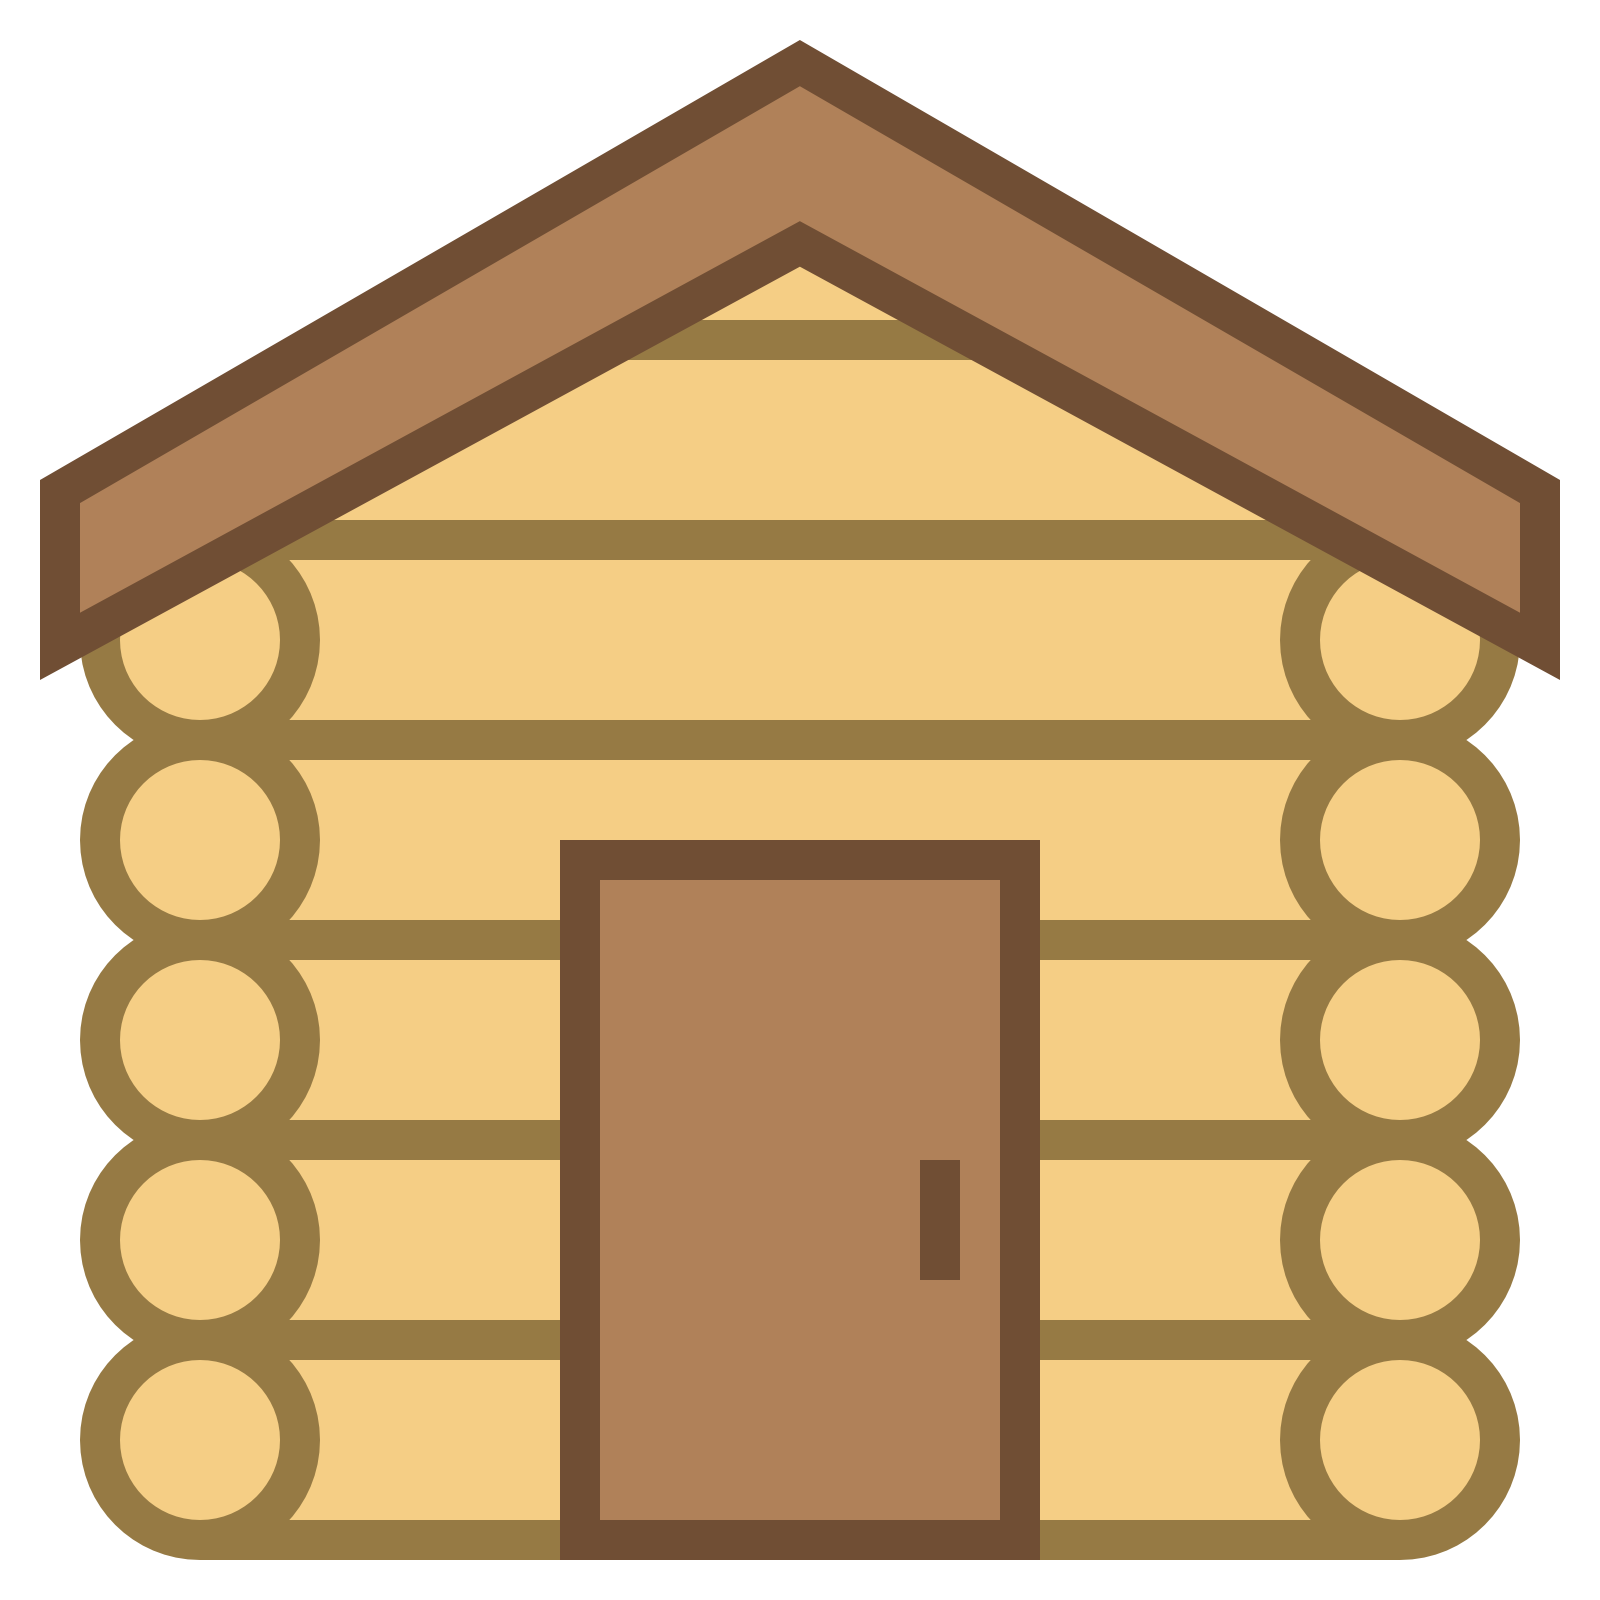 1600x1600 Png Log Cabin Transparent Log Cabin.png Images. Pluspng